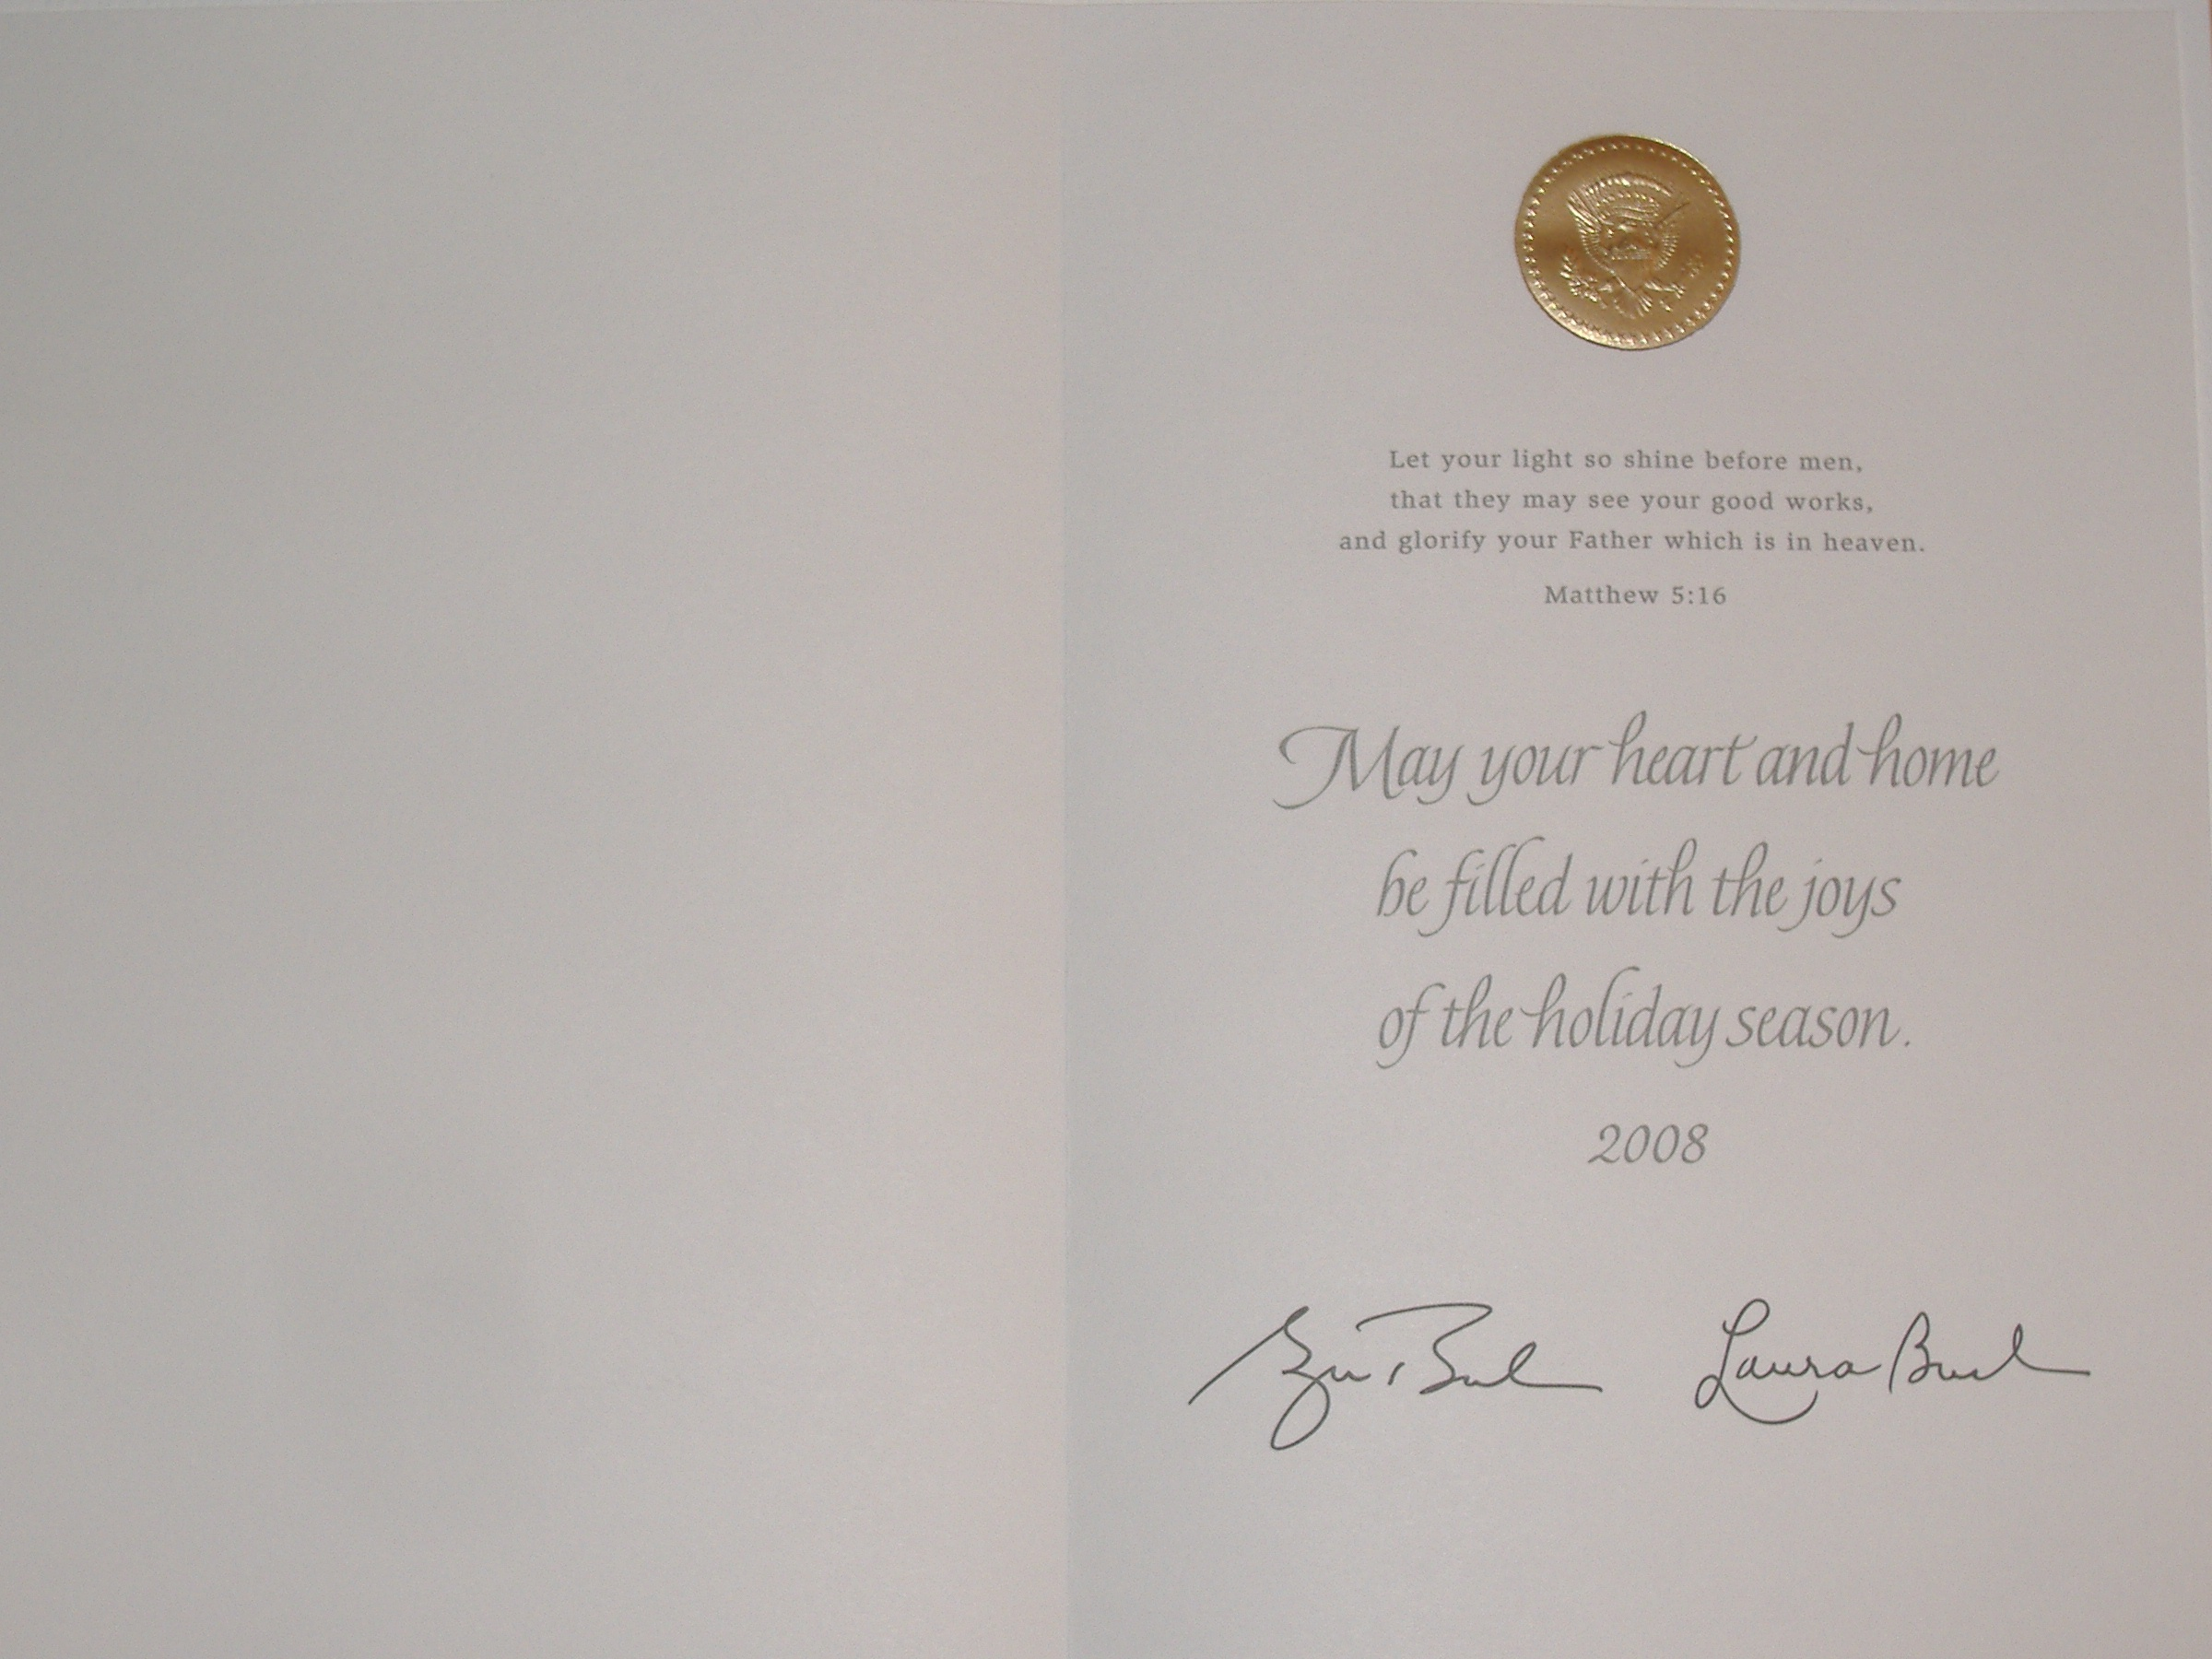 Christmas card from U.S. President George Bush and First Lady Laura Bush, 2008.